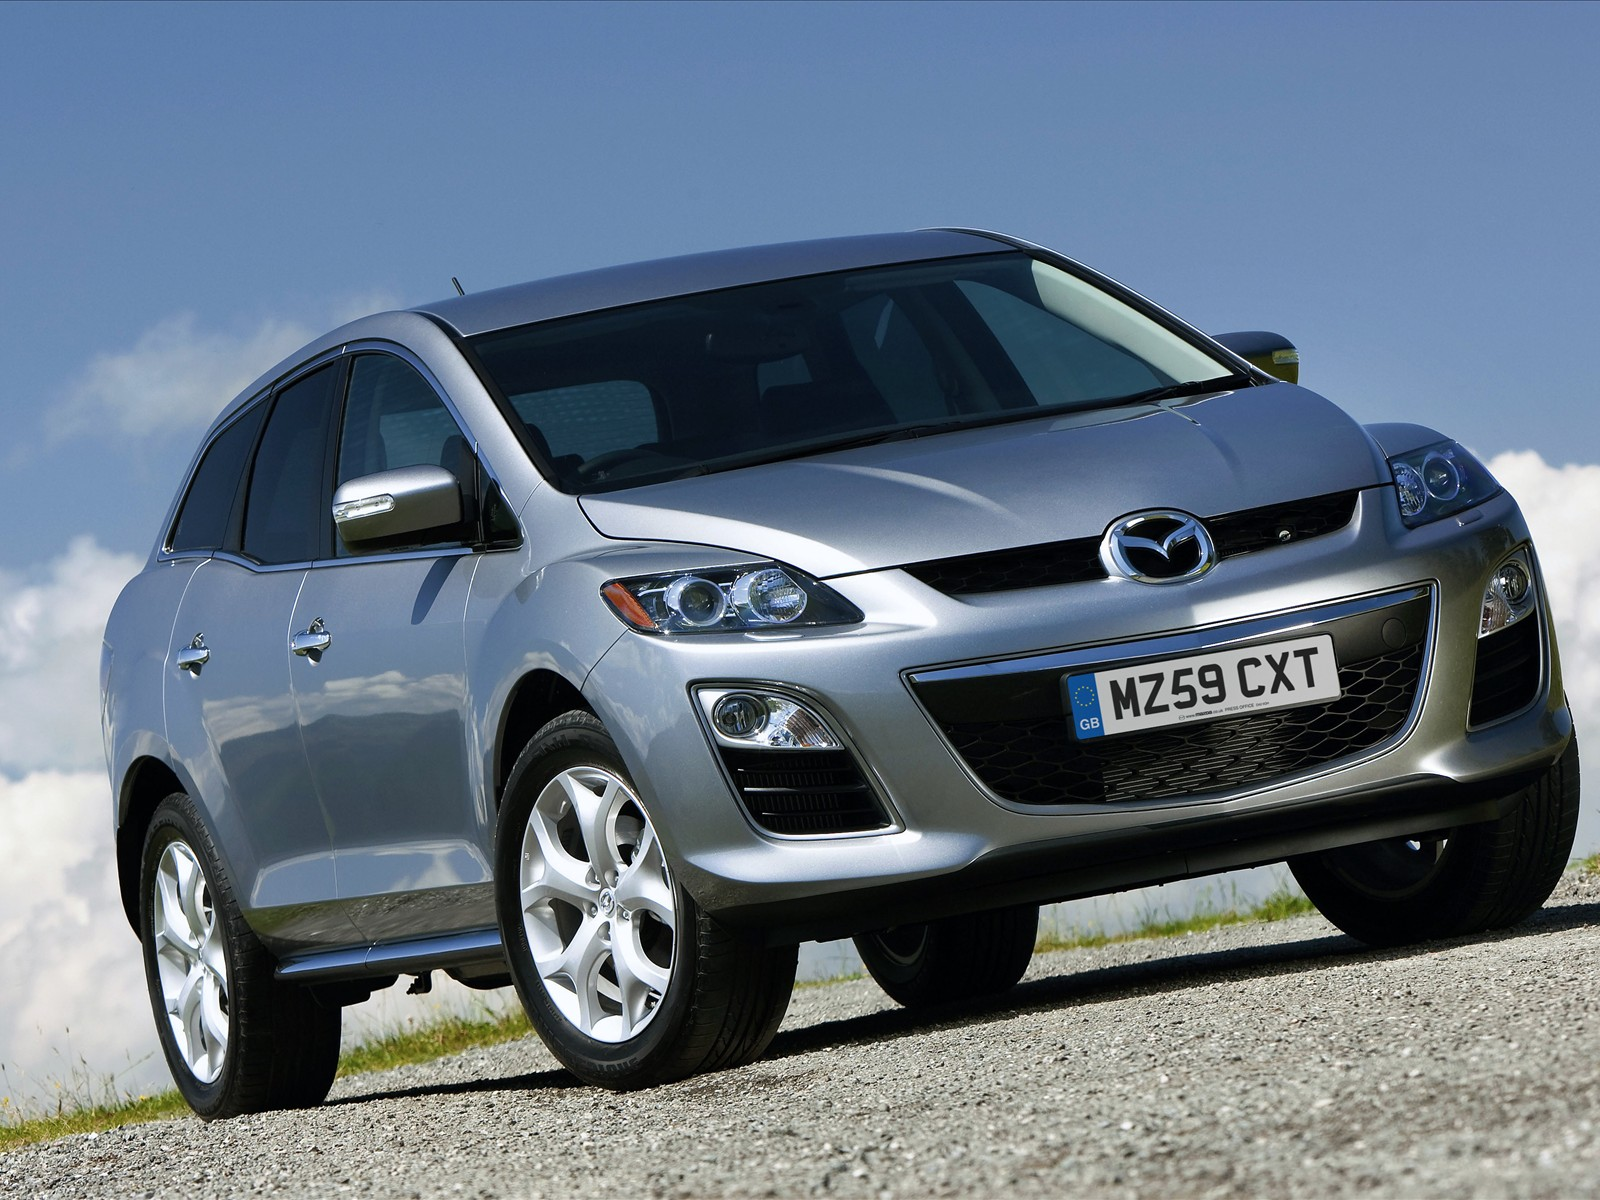 mazda cx 7 sports crossover 2010 03 free desktop. Black Bedroom Furniture Sets. Home Design Ideas